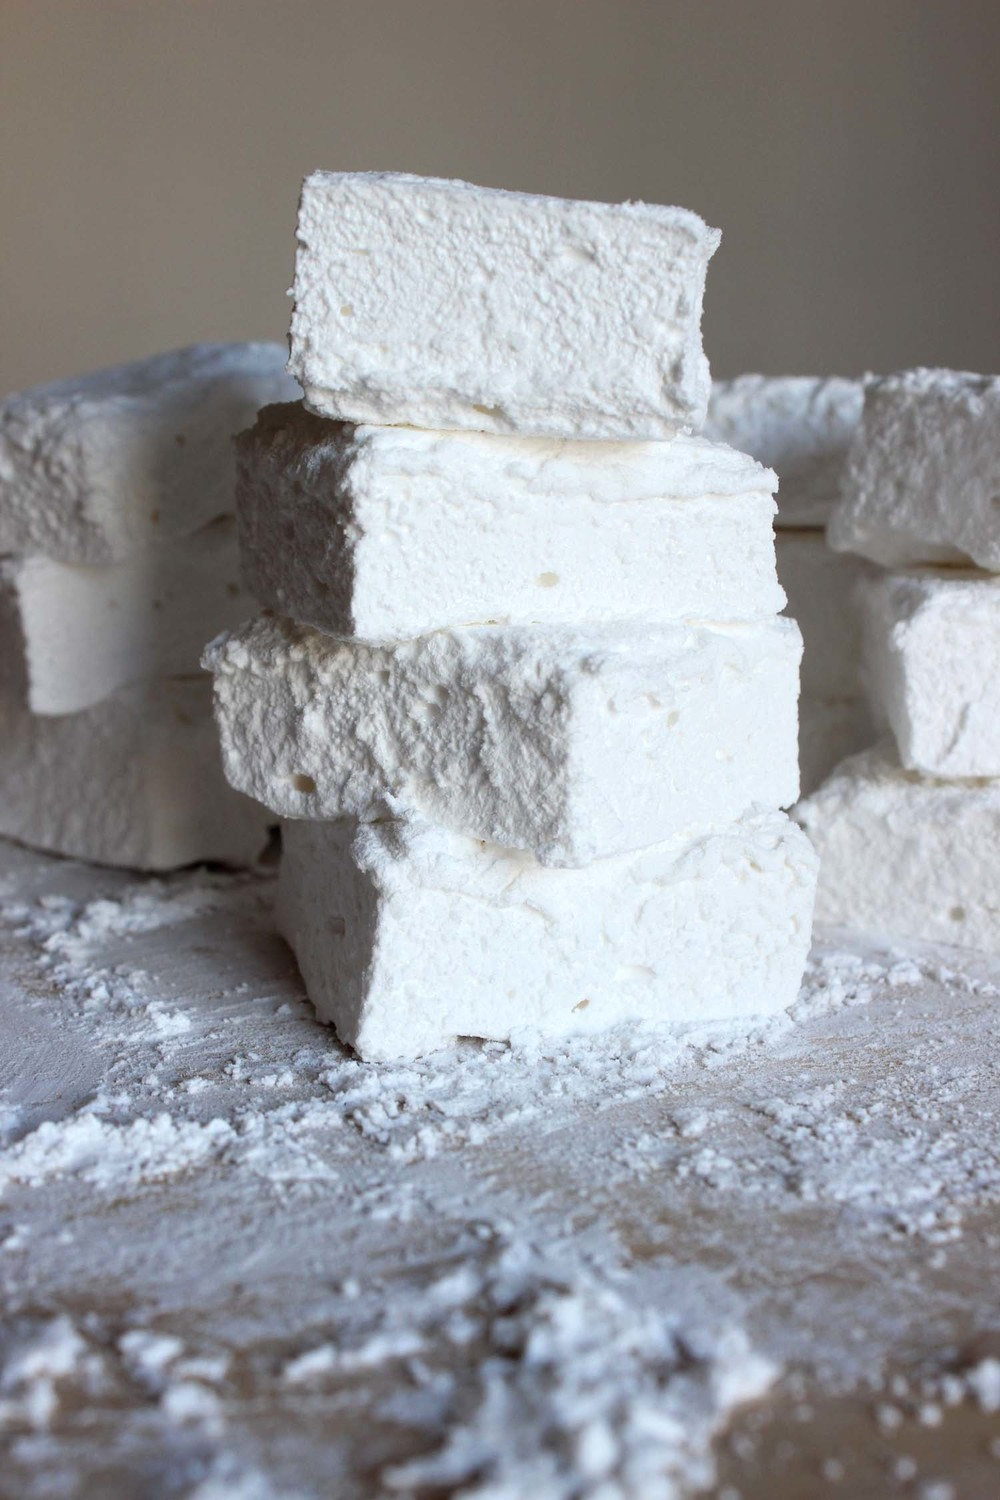 Homemade Marshmallows | Image: Laura Messersmith